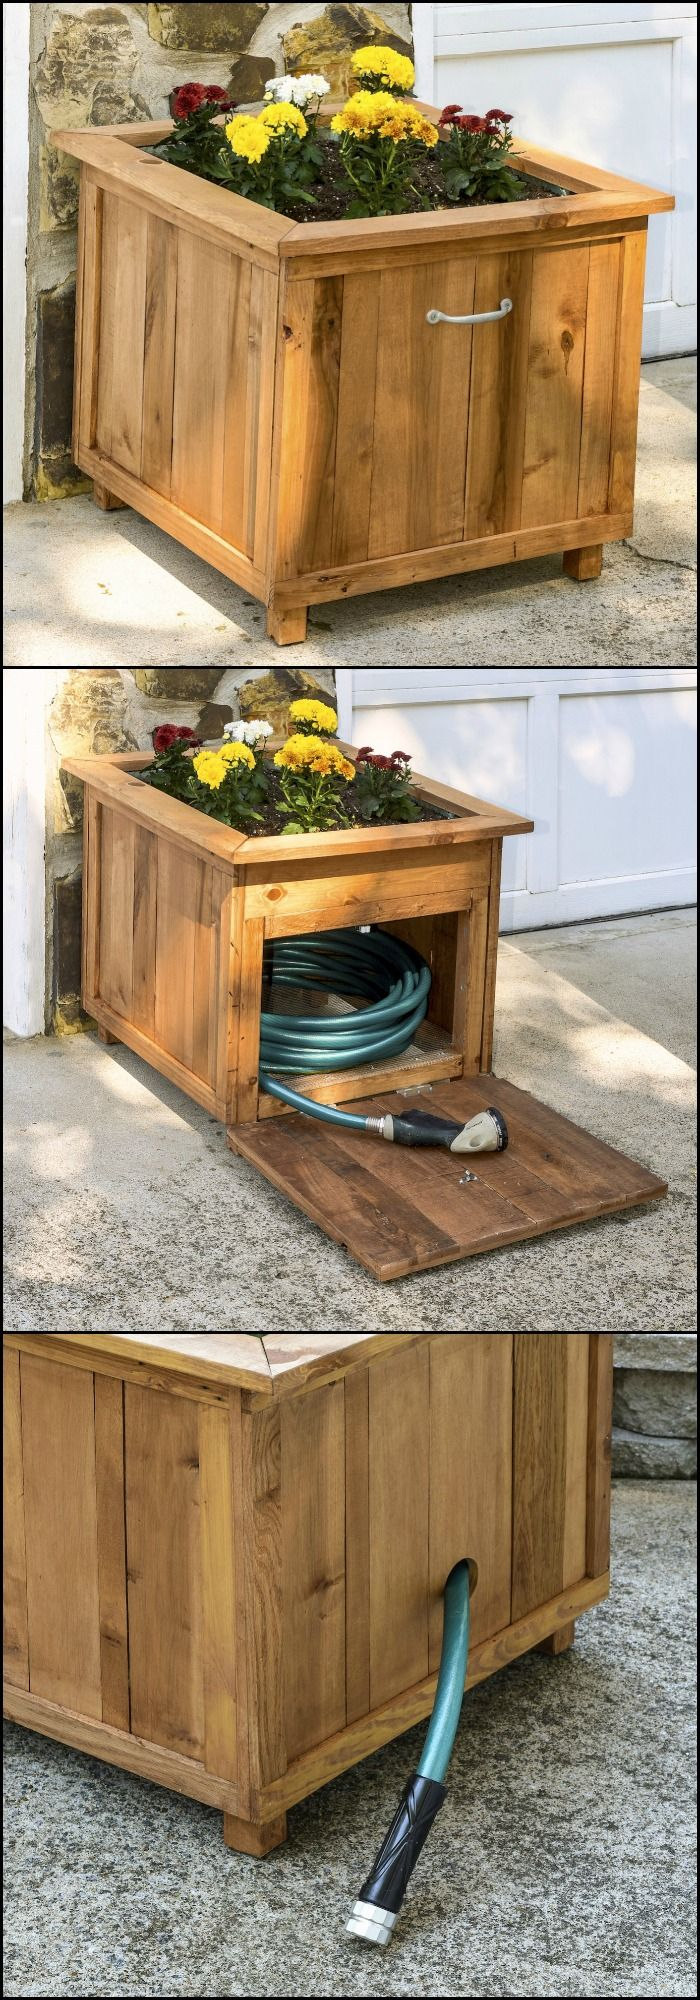 Garden Hose Storage Ideas decorative taupe pot hose reel Build A Garden Hose Storage With Planter